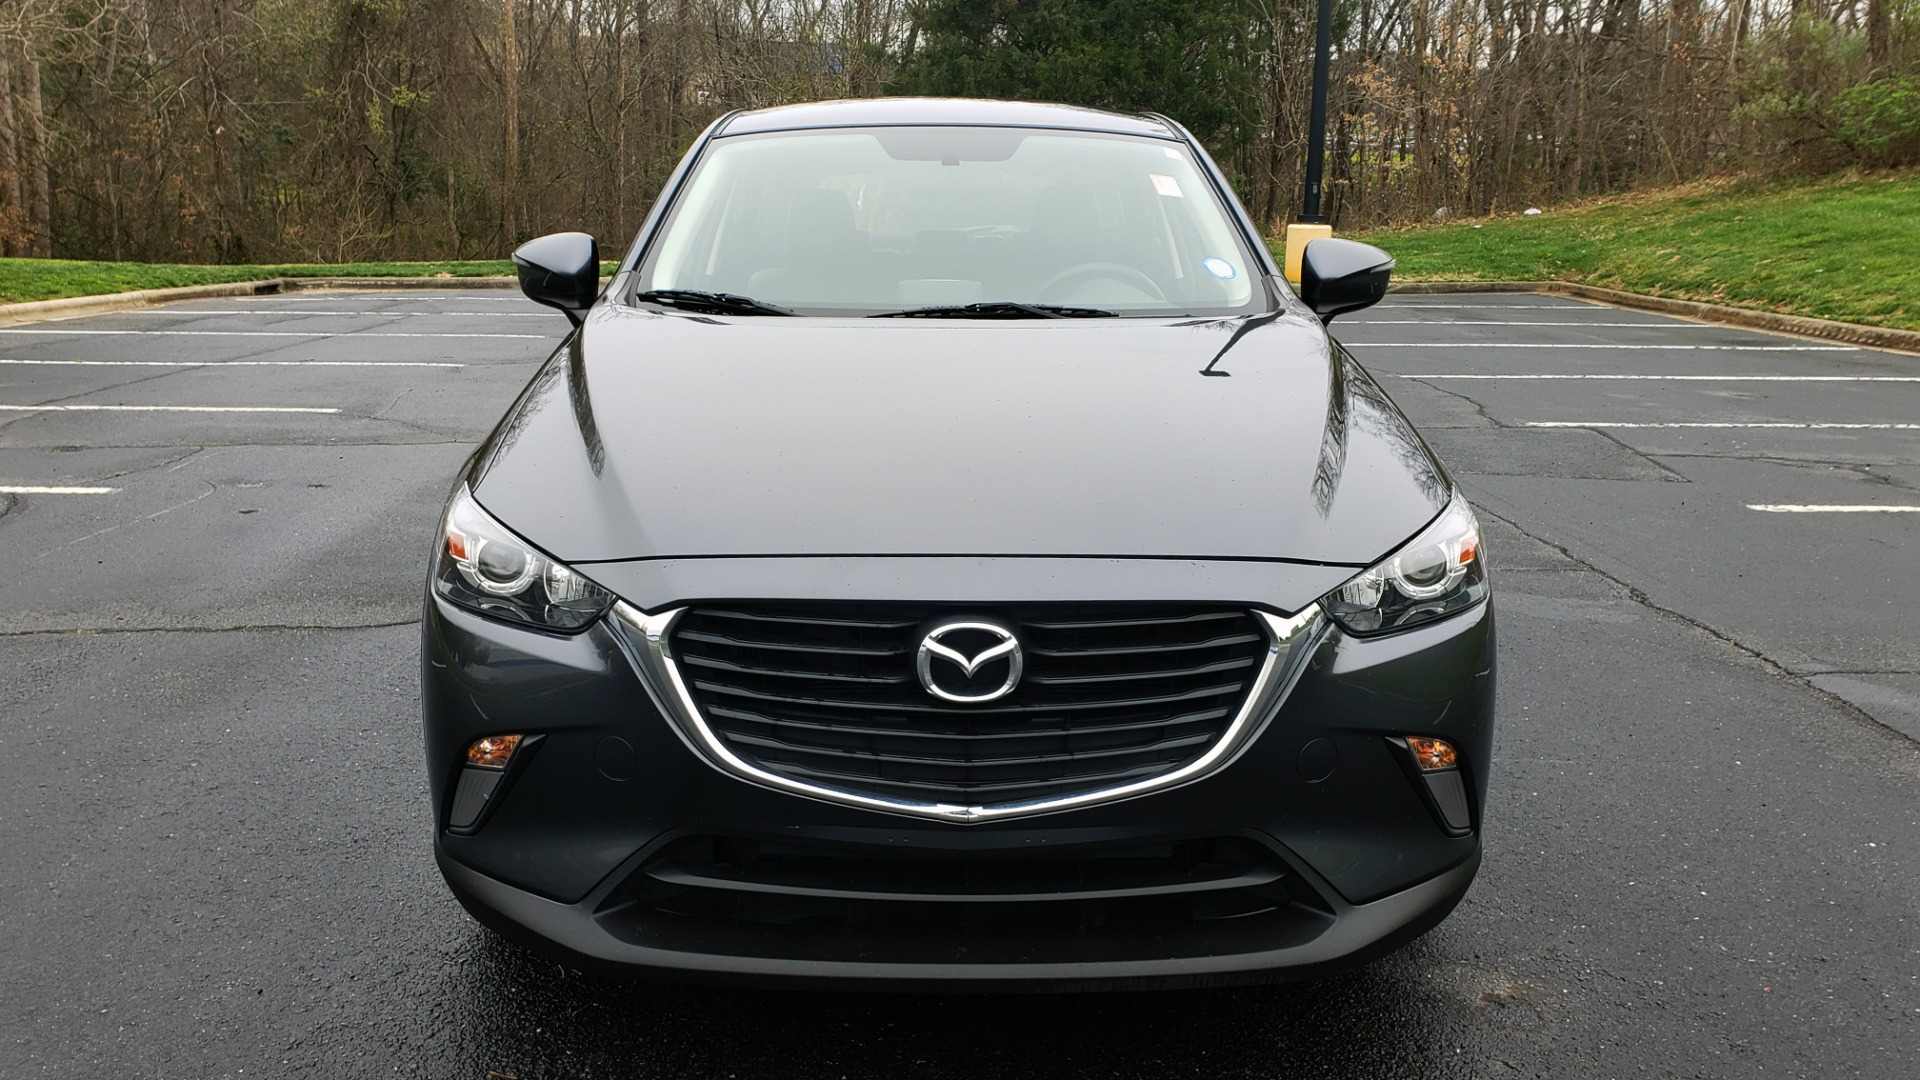 Used 2016 Mazda CX-3 TOURING AWD / 4-CYL / 6-SPD AUTO / NAV / HTD STS / 7-INCH DISPLAY for sale Sold at Formula Imports in Charlotte NC 28227 23